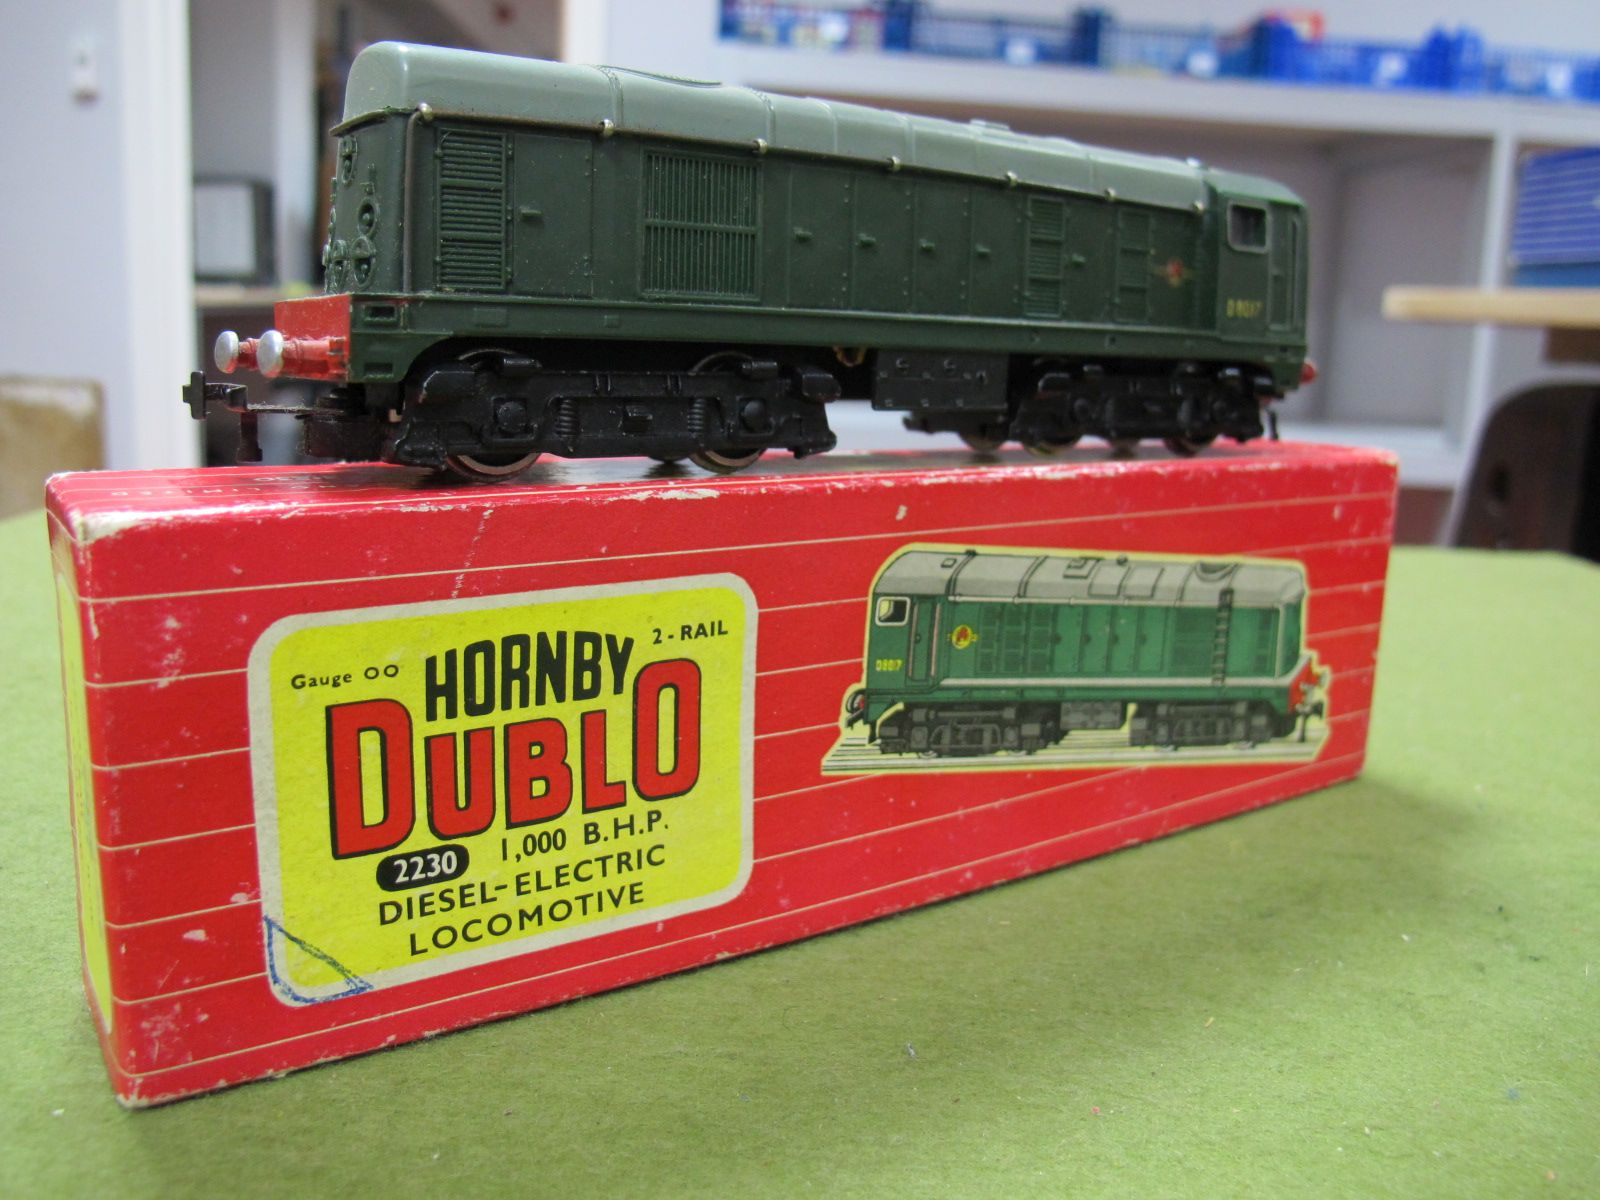 Lot 47 - A Hornby Dublo Two Rail No. 2230 1,000 BHP Diesel Electric Locomotive R/No. D817, very good:- Boxed